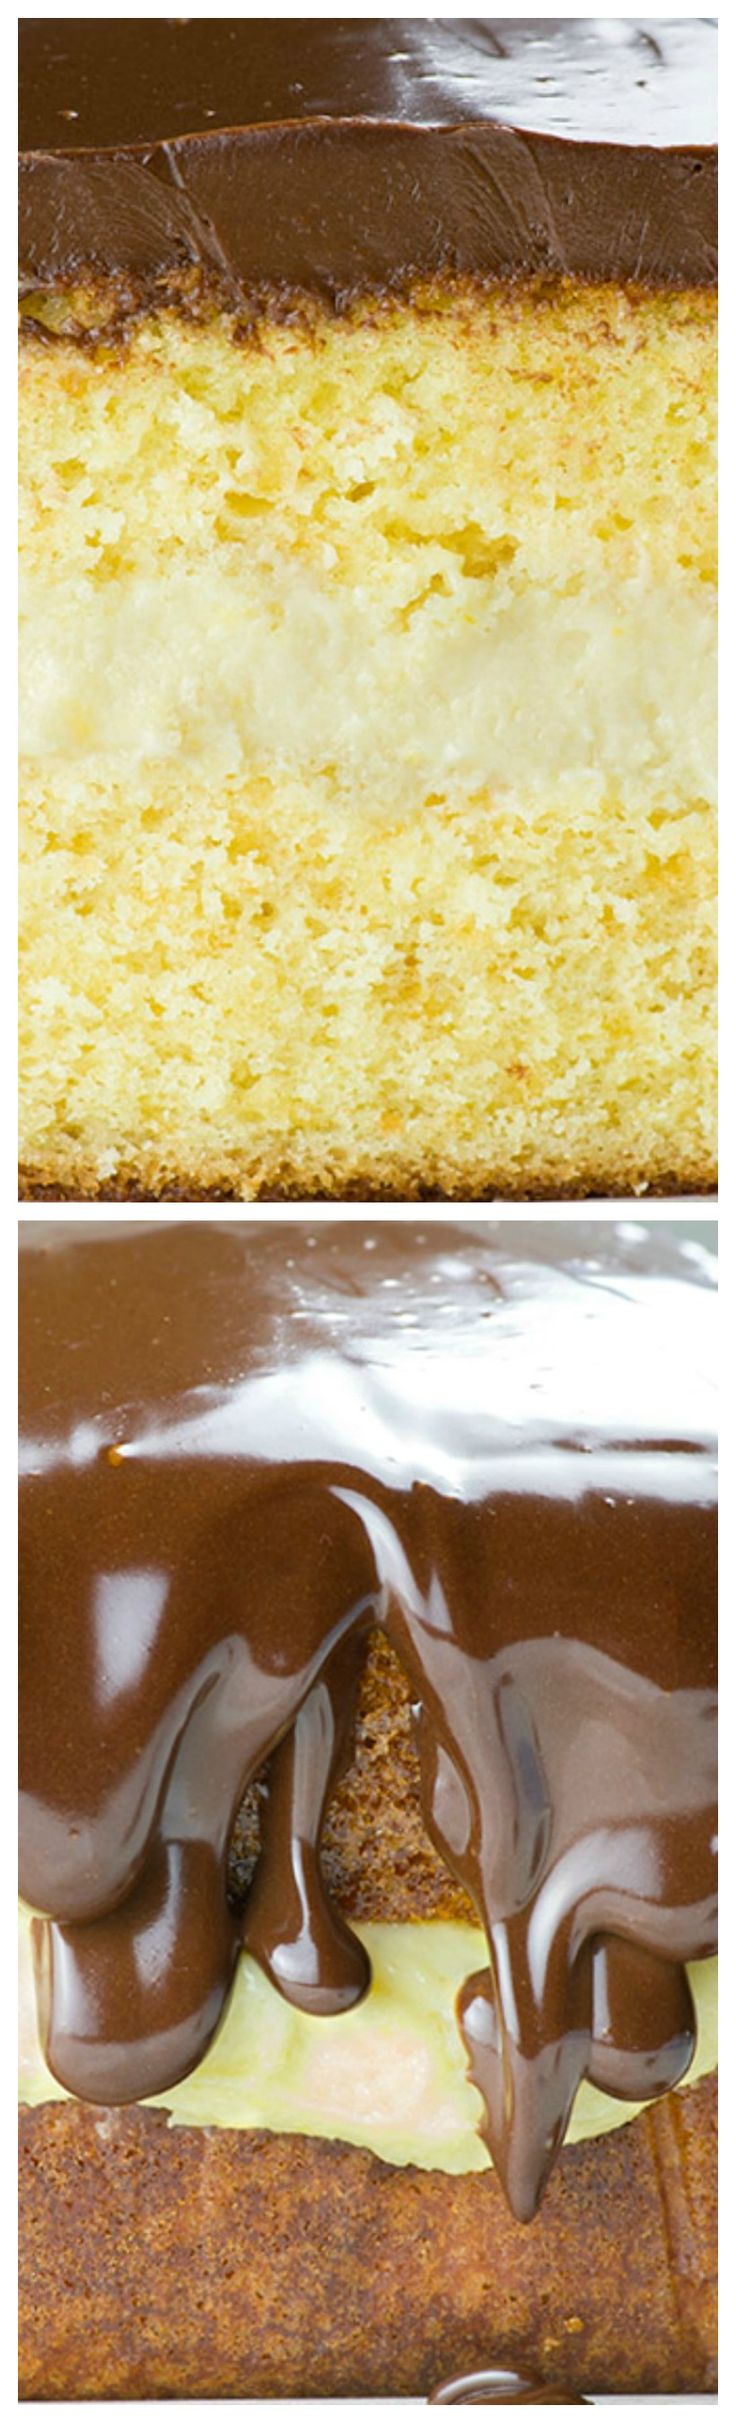 Boston Cream Pie Pound Cake ~ Magnificent, smooth and creamy filling with vanilla flavor sandwiched between two cake layer, topped with fudgy and rich chocolate ganache layer is winning combo... You get both vanilla and chocolate in one mouthwatering treat!